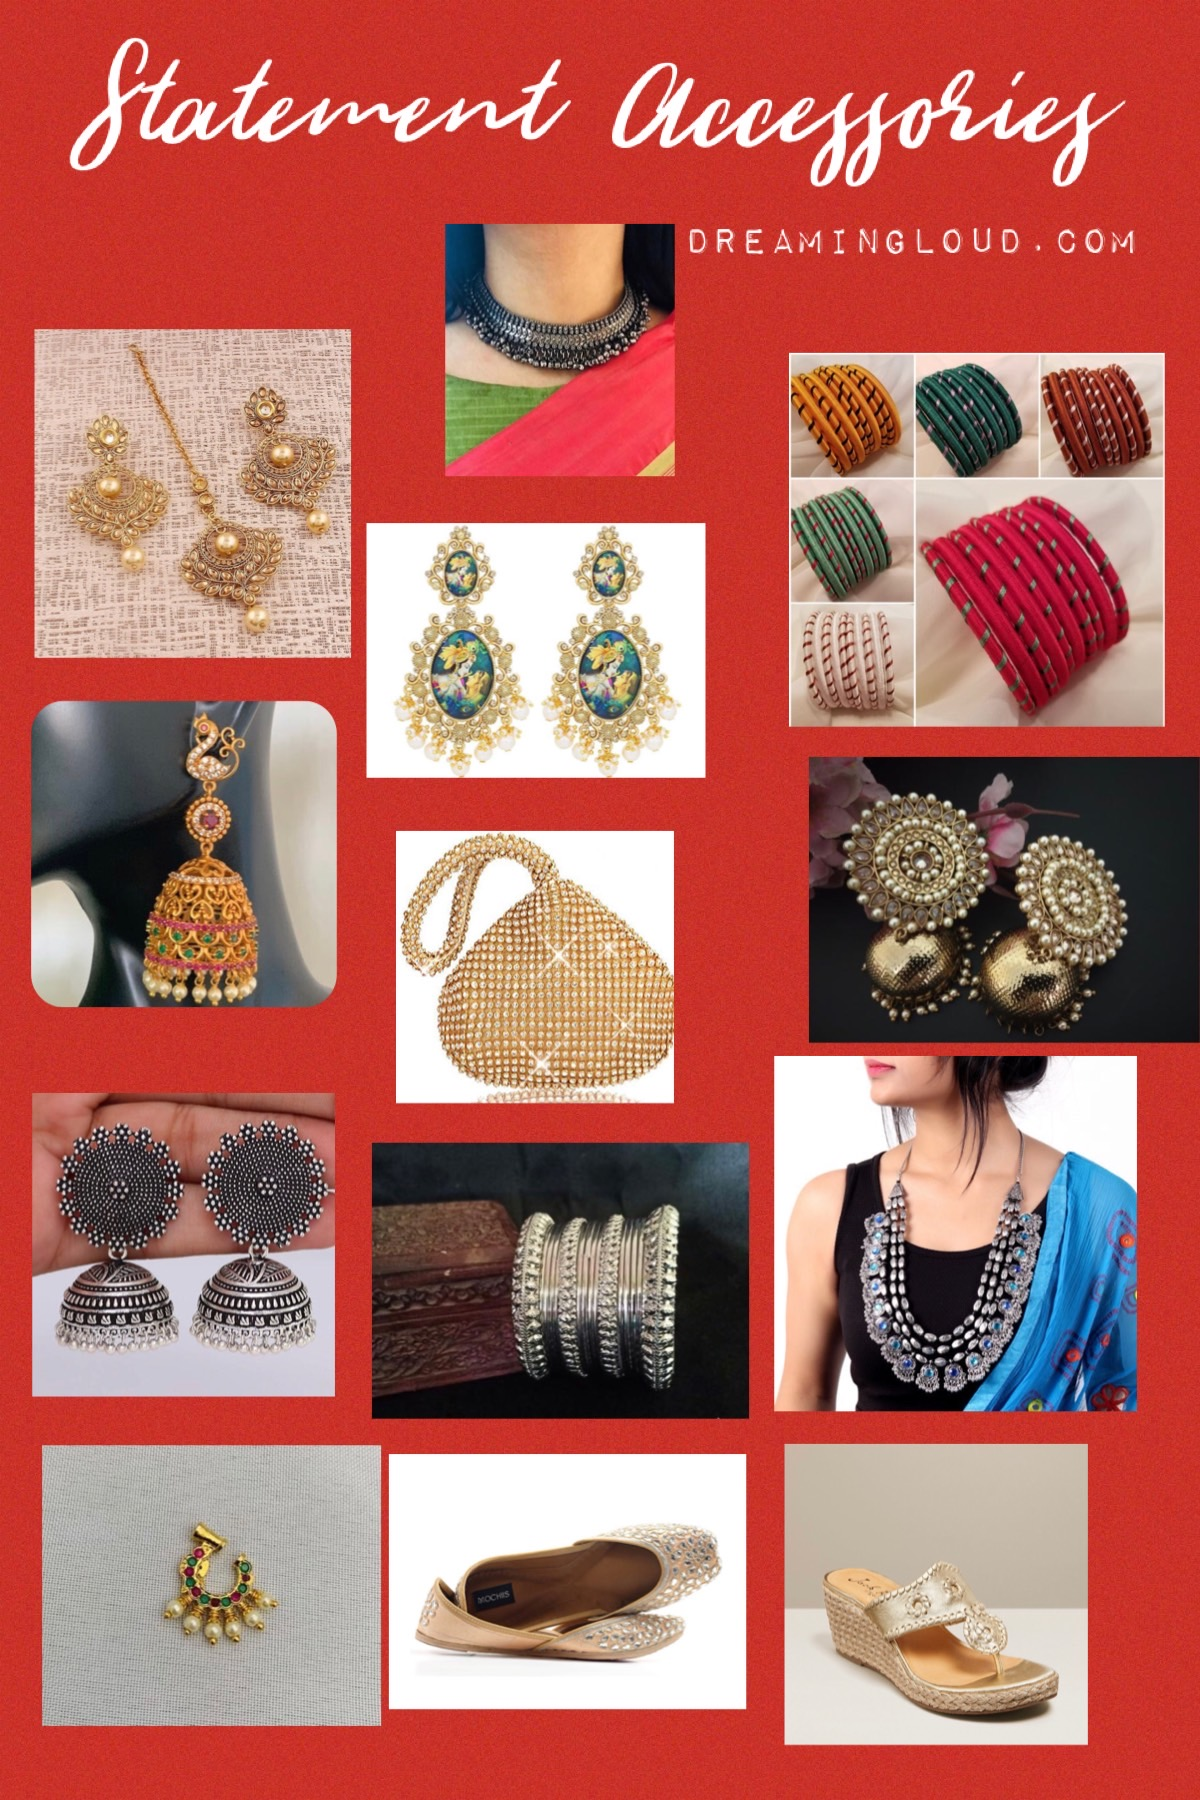 5 Cute Diwali Outfits to Wear for your Diwali Party, Diwali look book featured by top US modest fashion blog, Dreaming Loud., Diwali Statement Acessories, favorite Indian jewelry Etsy finds